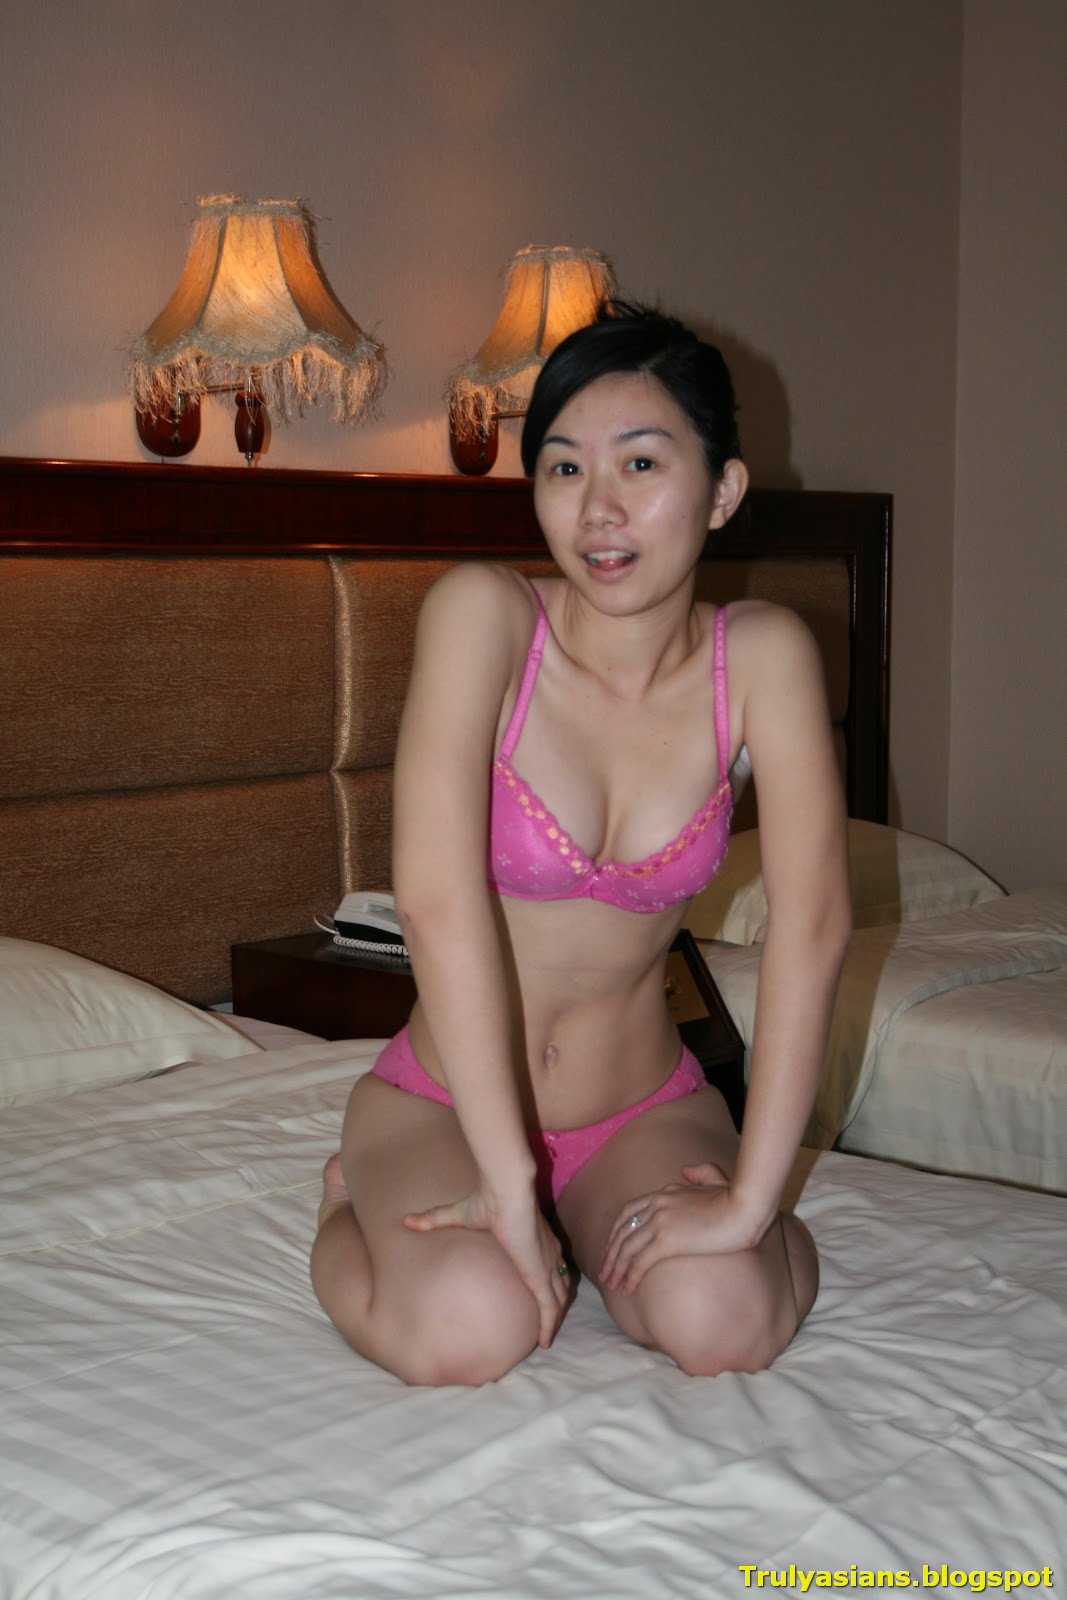 Well understand chinese girl singapore porn opinion you